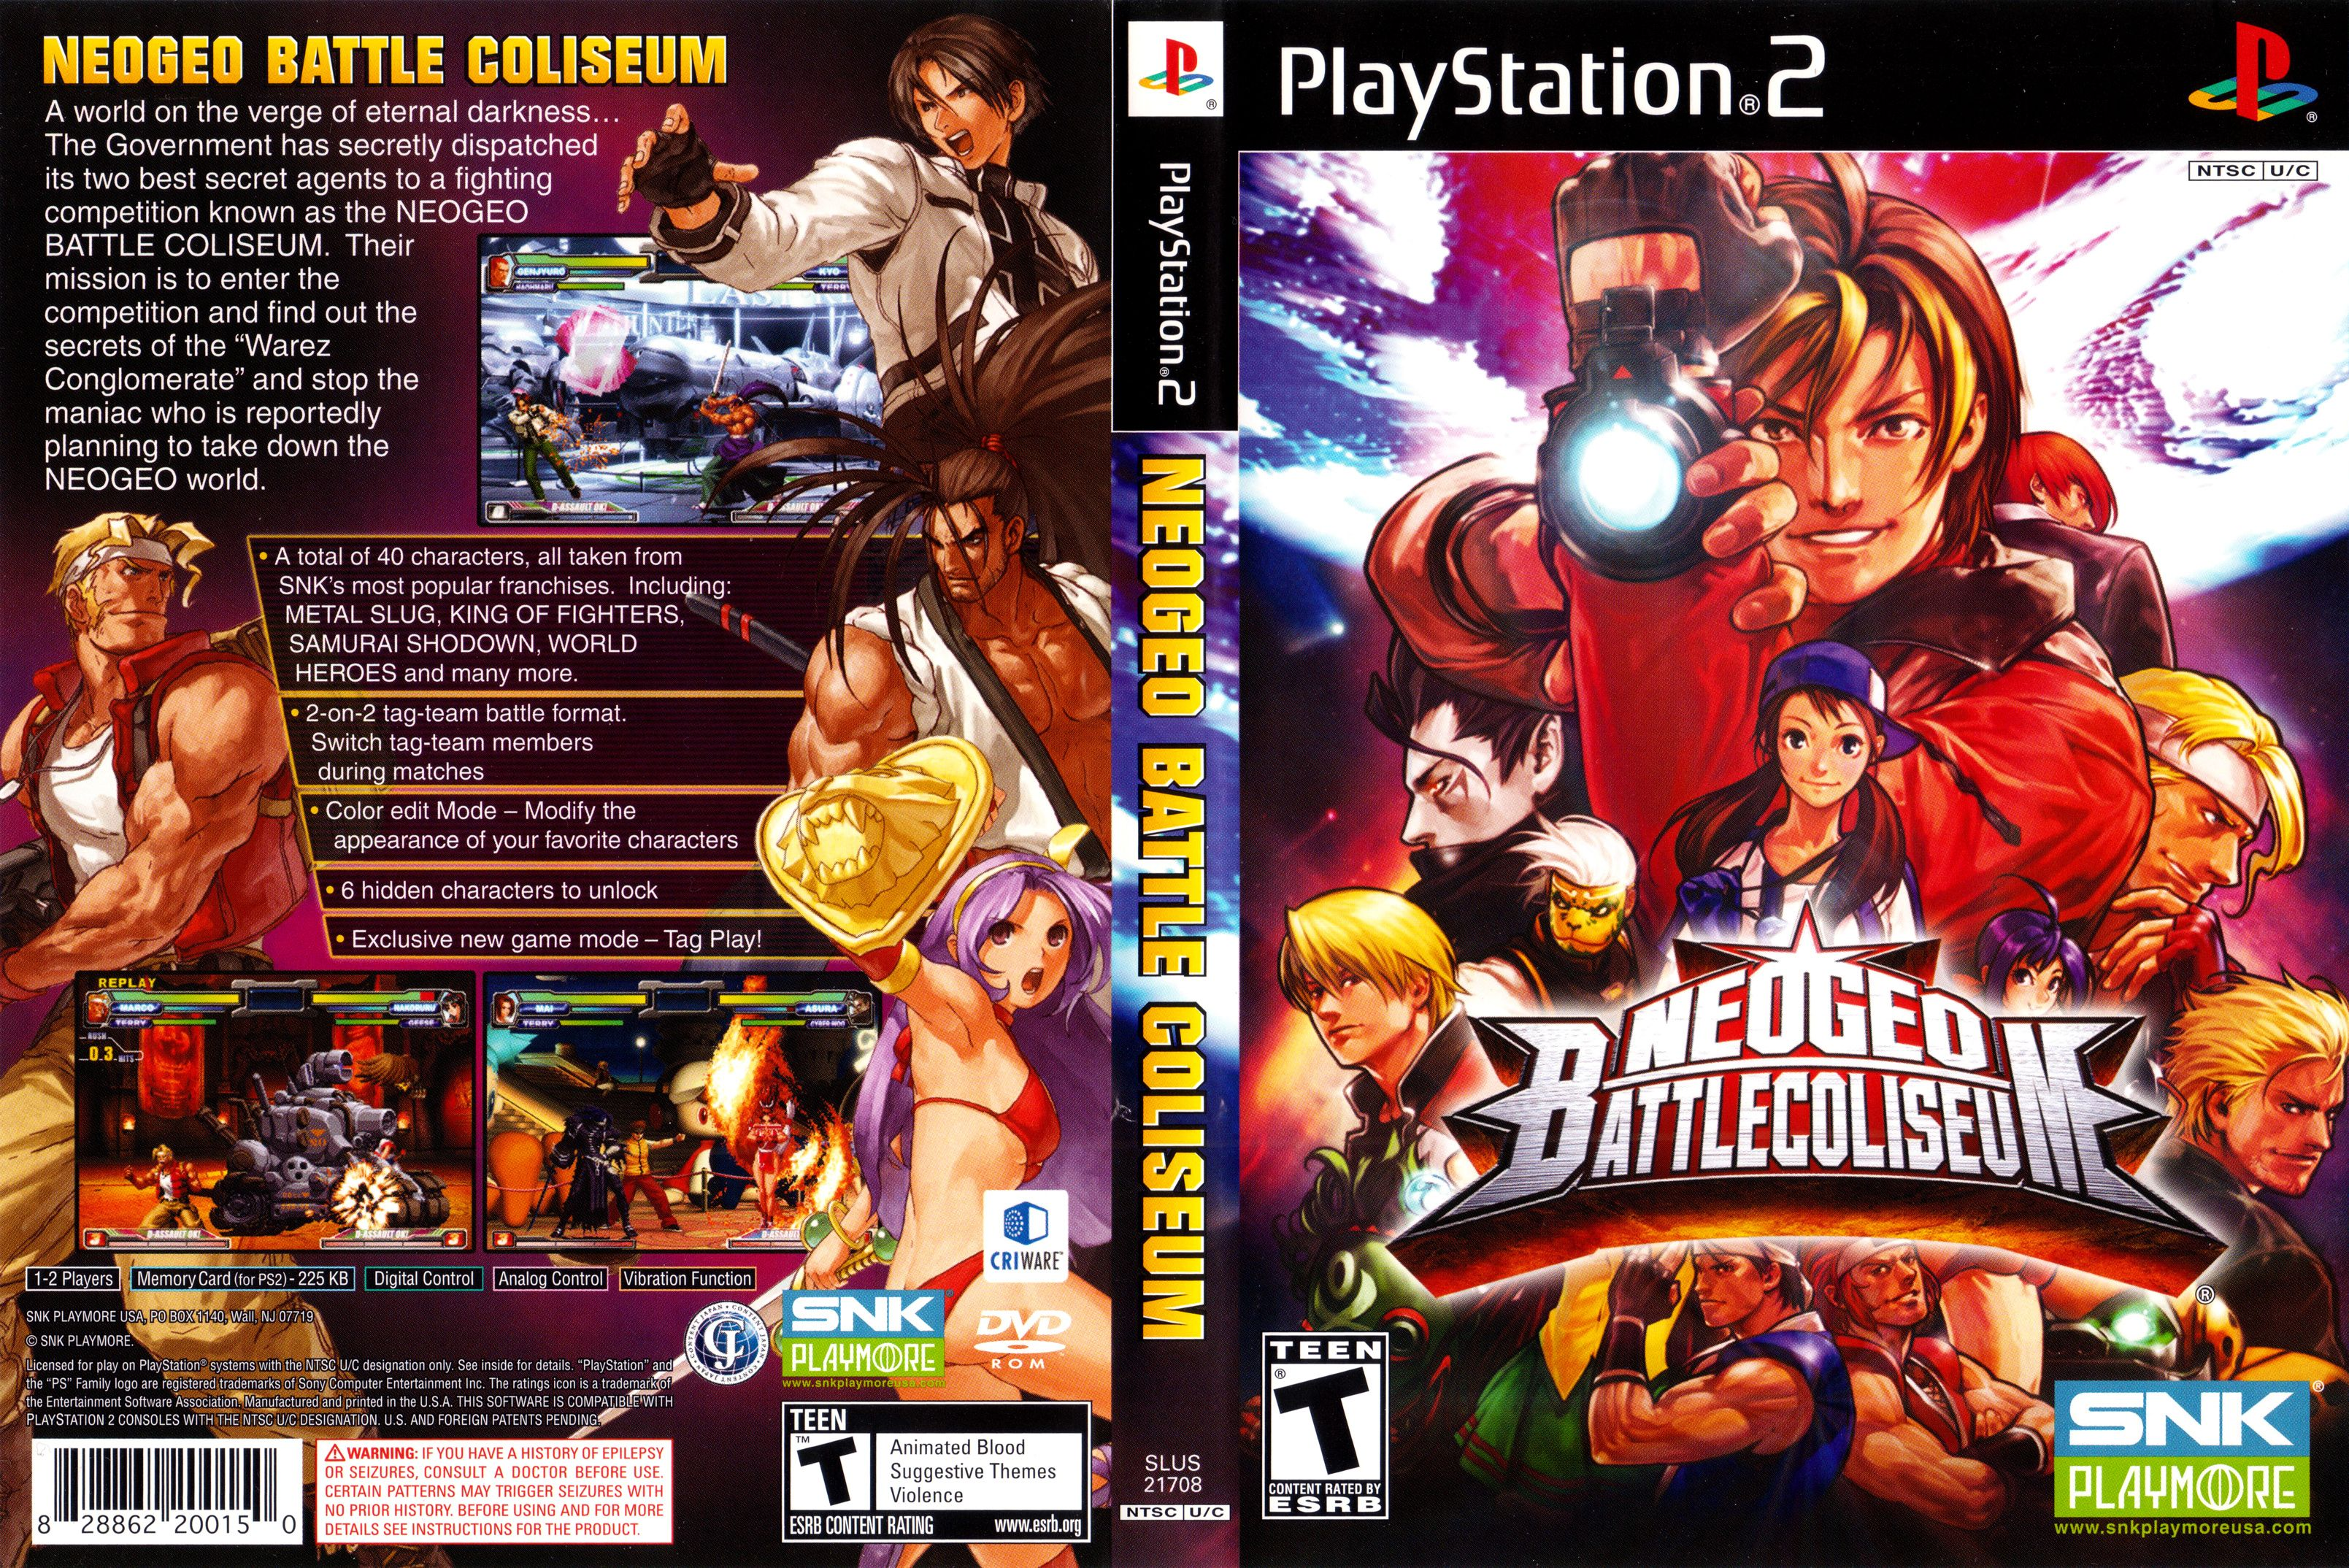 Neo Geo Battle Coliseum Playstation 2 Cover.